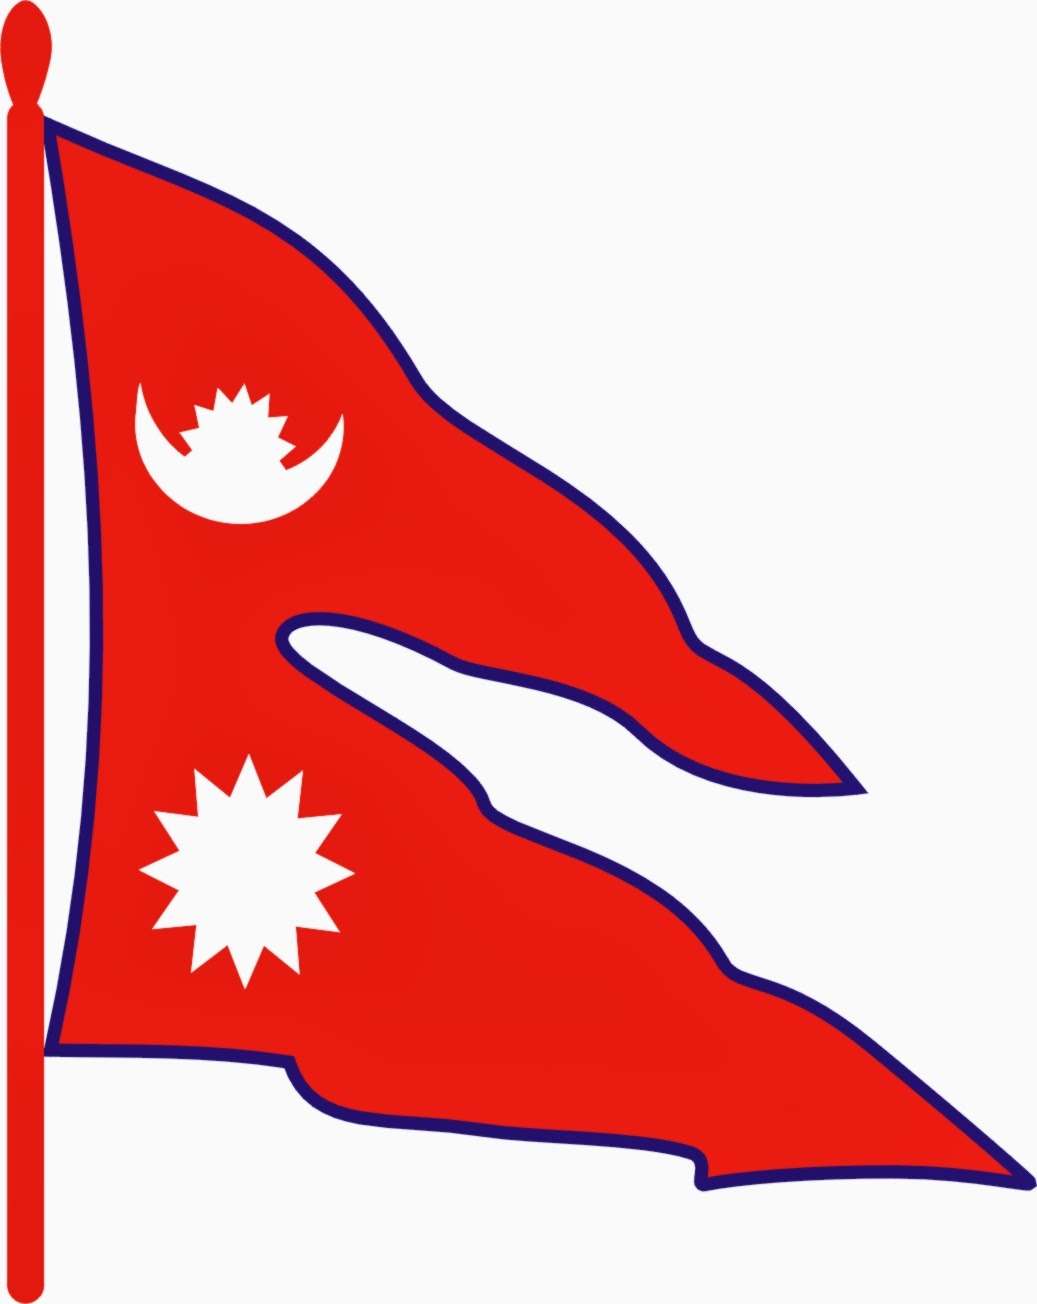 The National Flag of Nepal - Images of Nepal Flag | Chandra Thapa Blog\'s